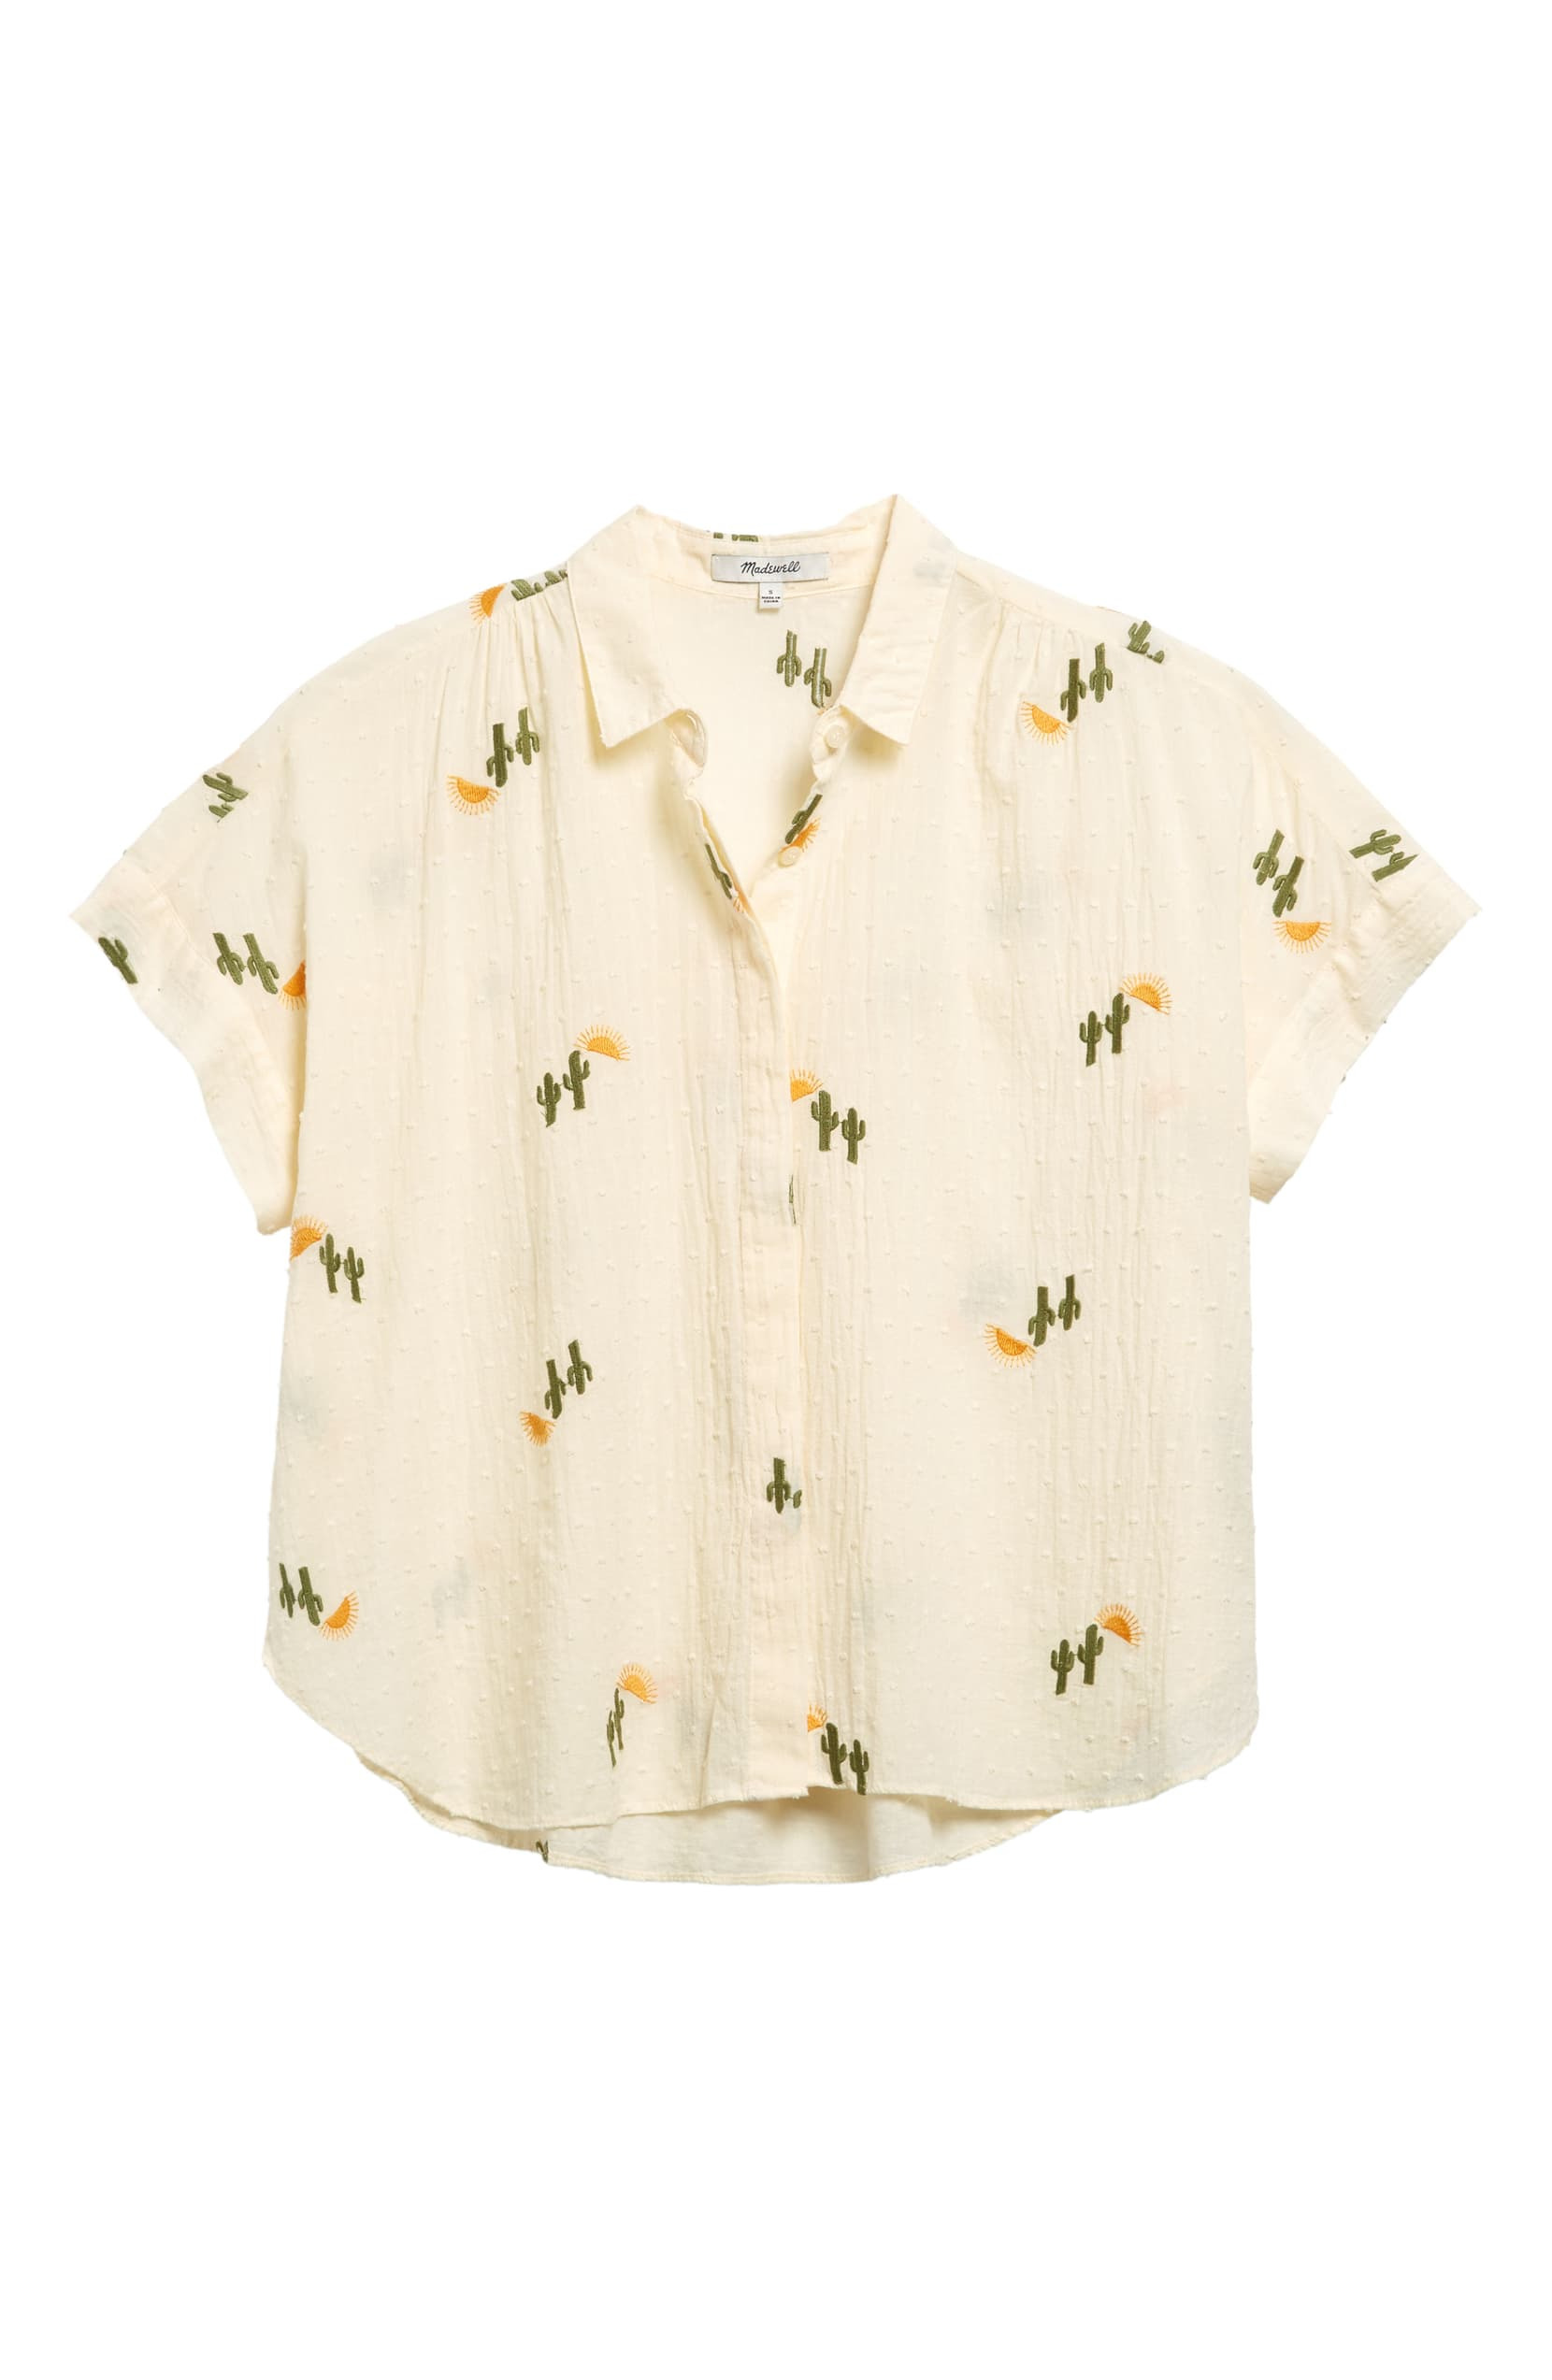 Madewell Cactus Embroidered Shirt